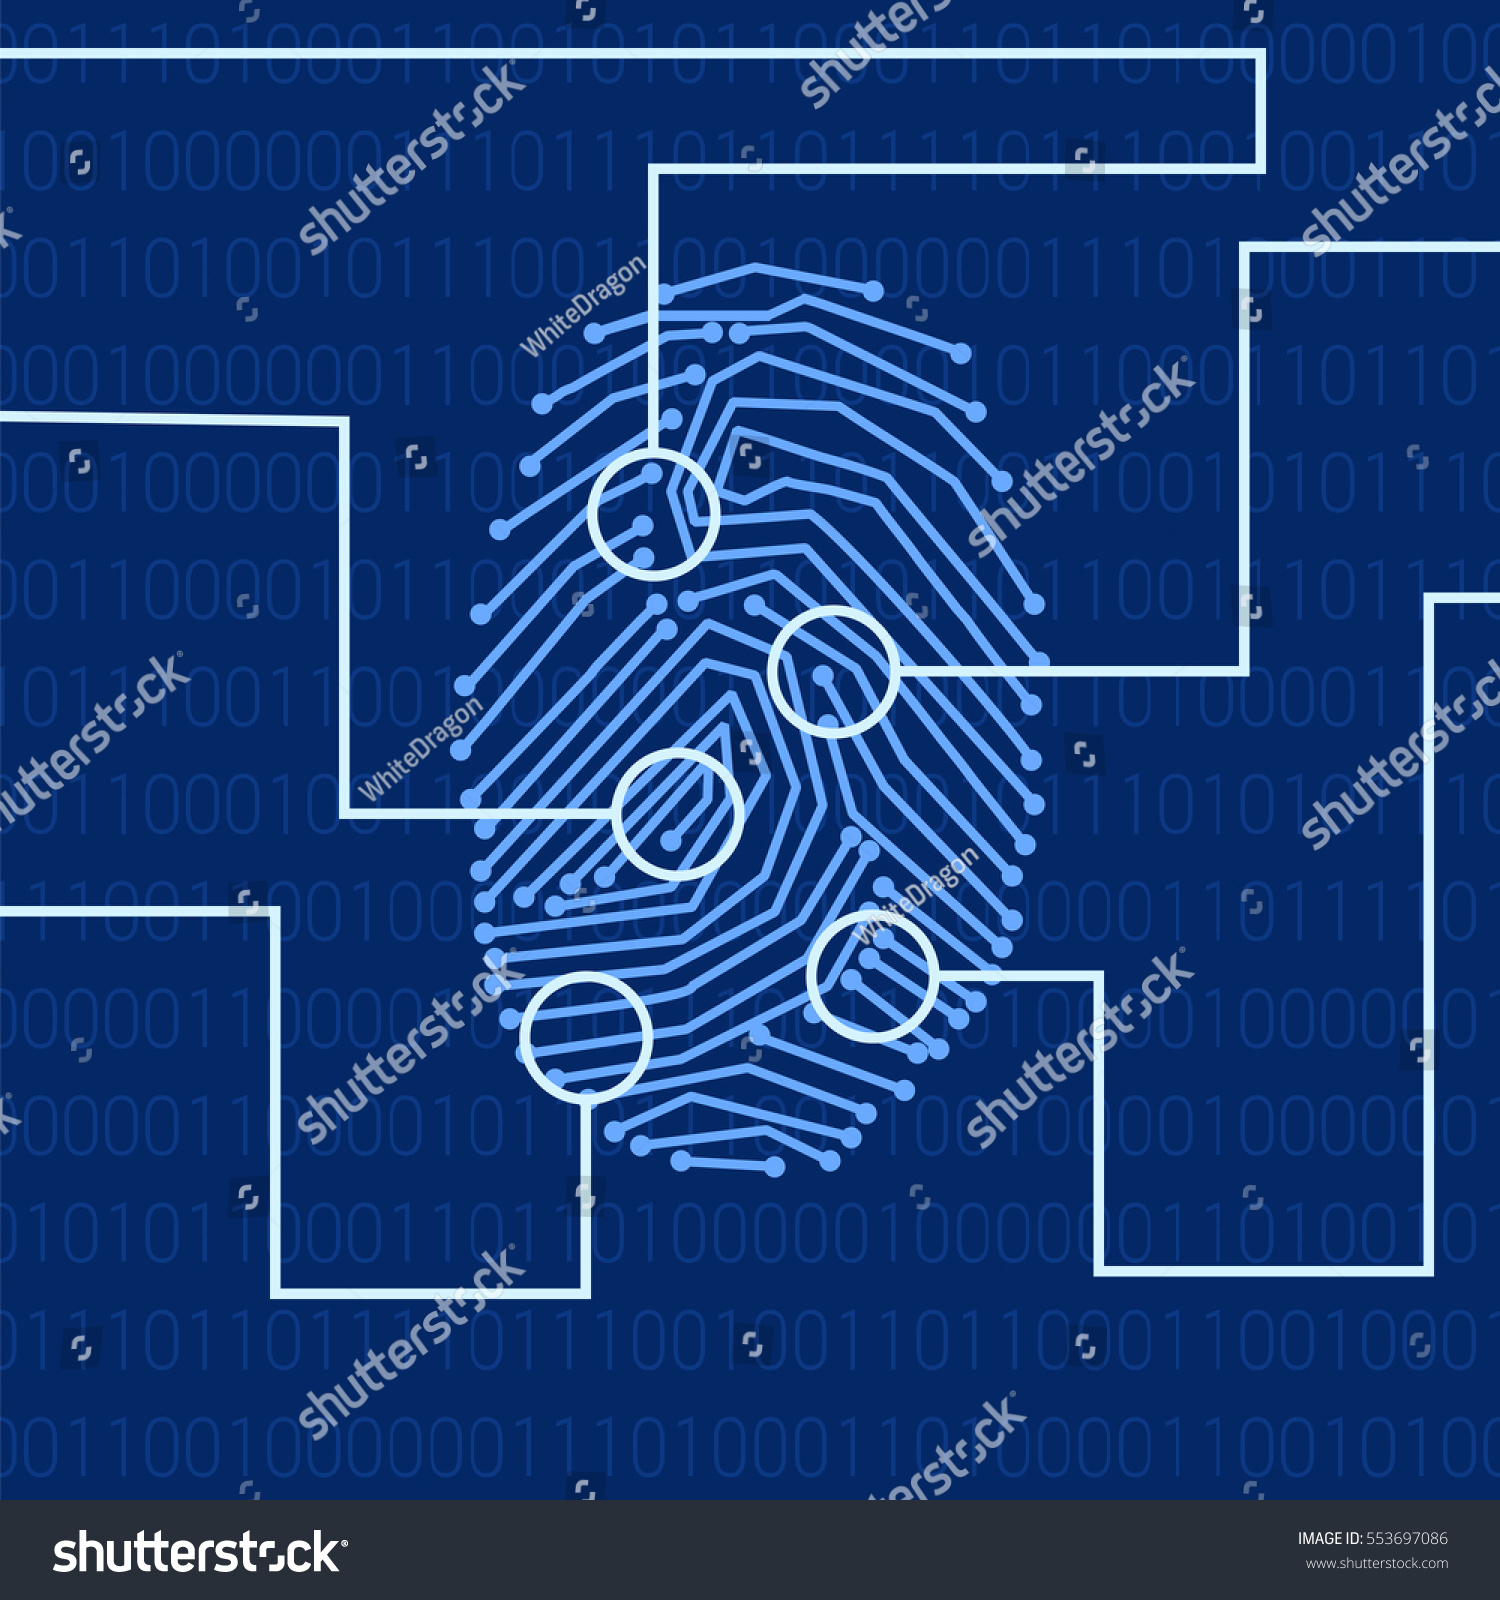 Fingerprint Biometric Identification On Hightech Background Stock